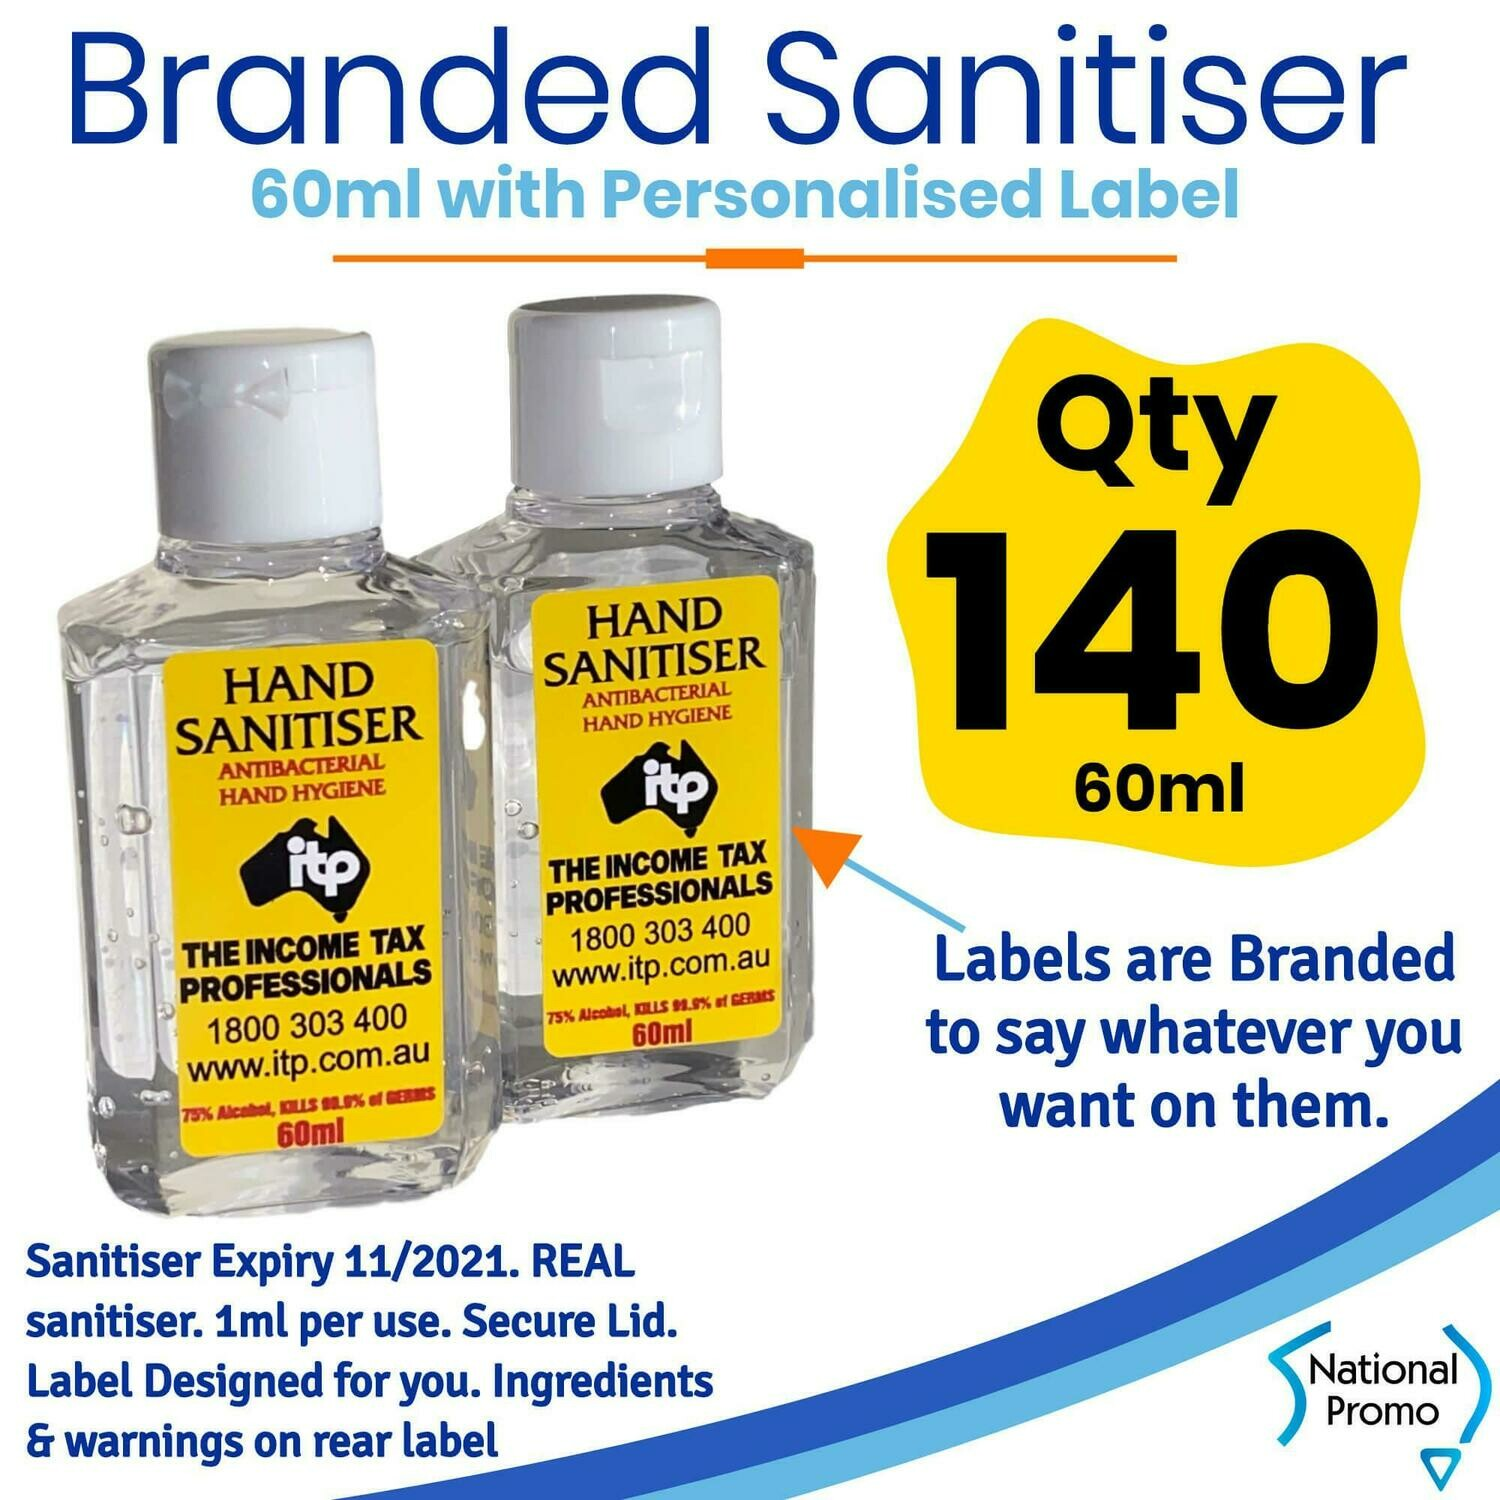 Qty of 140 x 60ml Hand Sanitiser with Personalised Labels